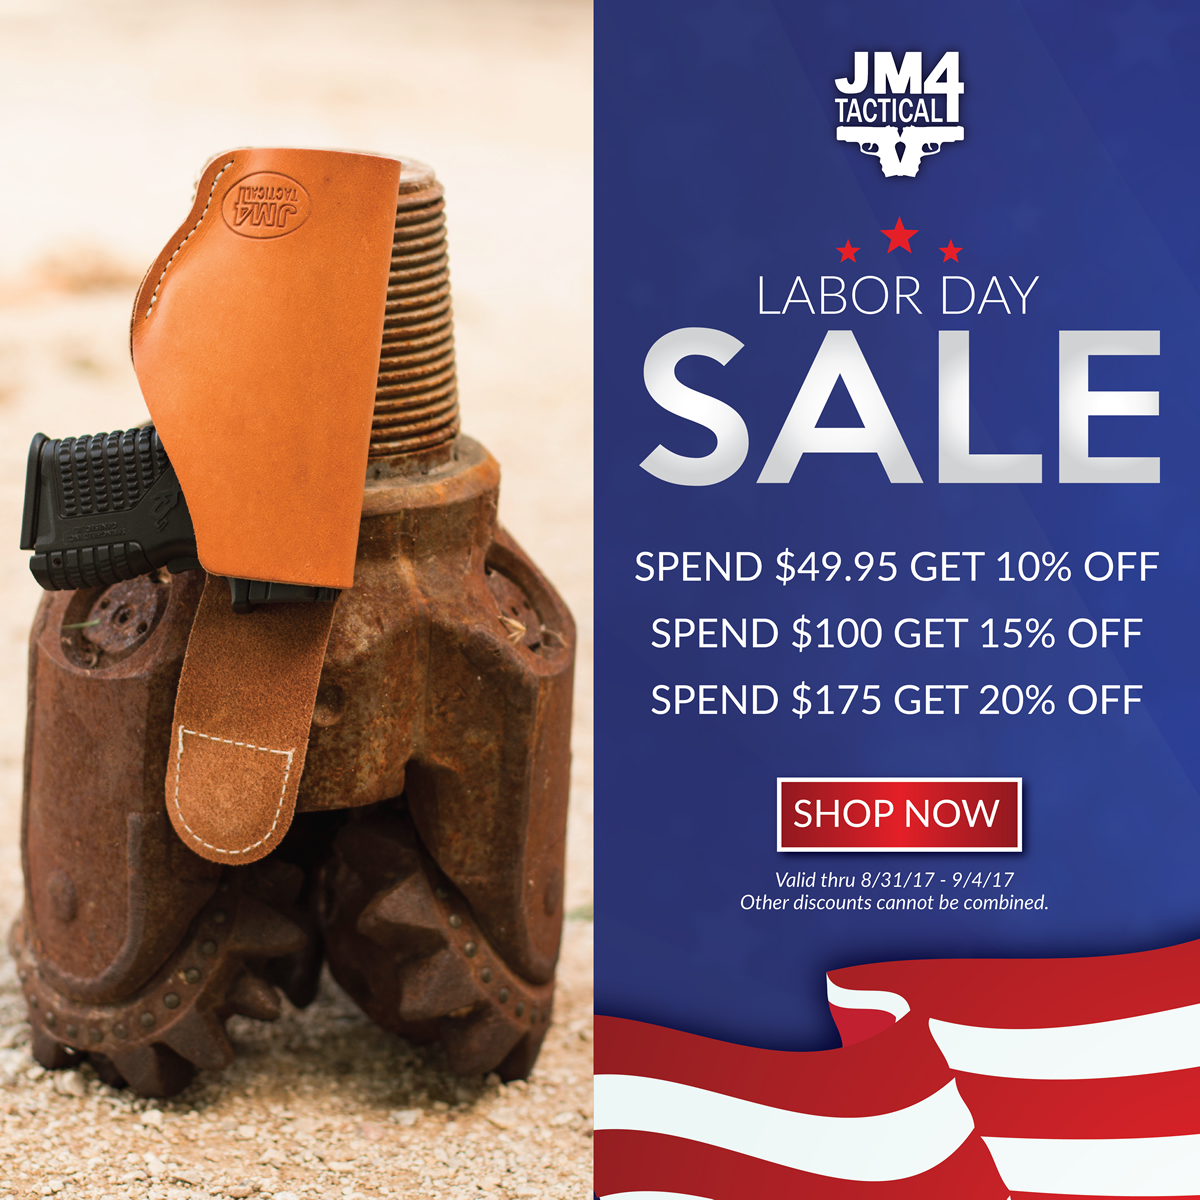 JM4 Tactical Labor Day Sale